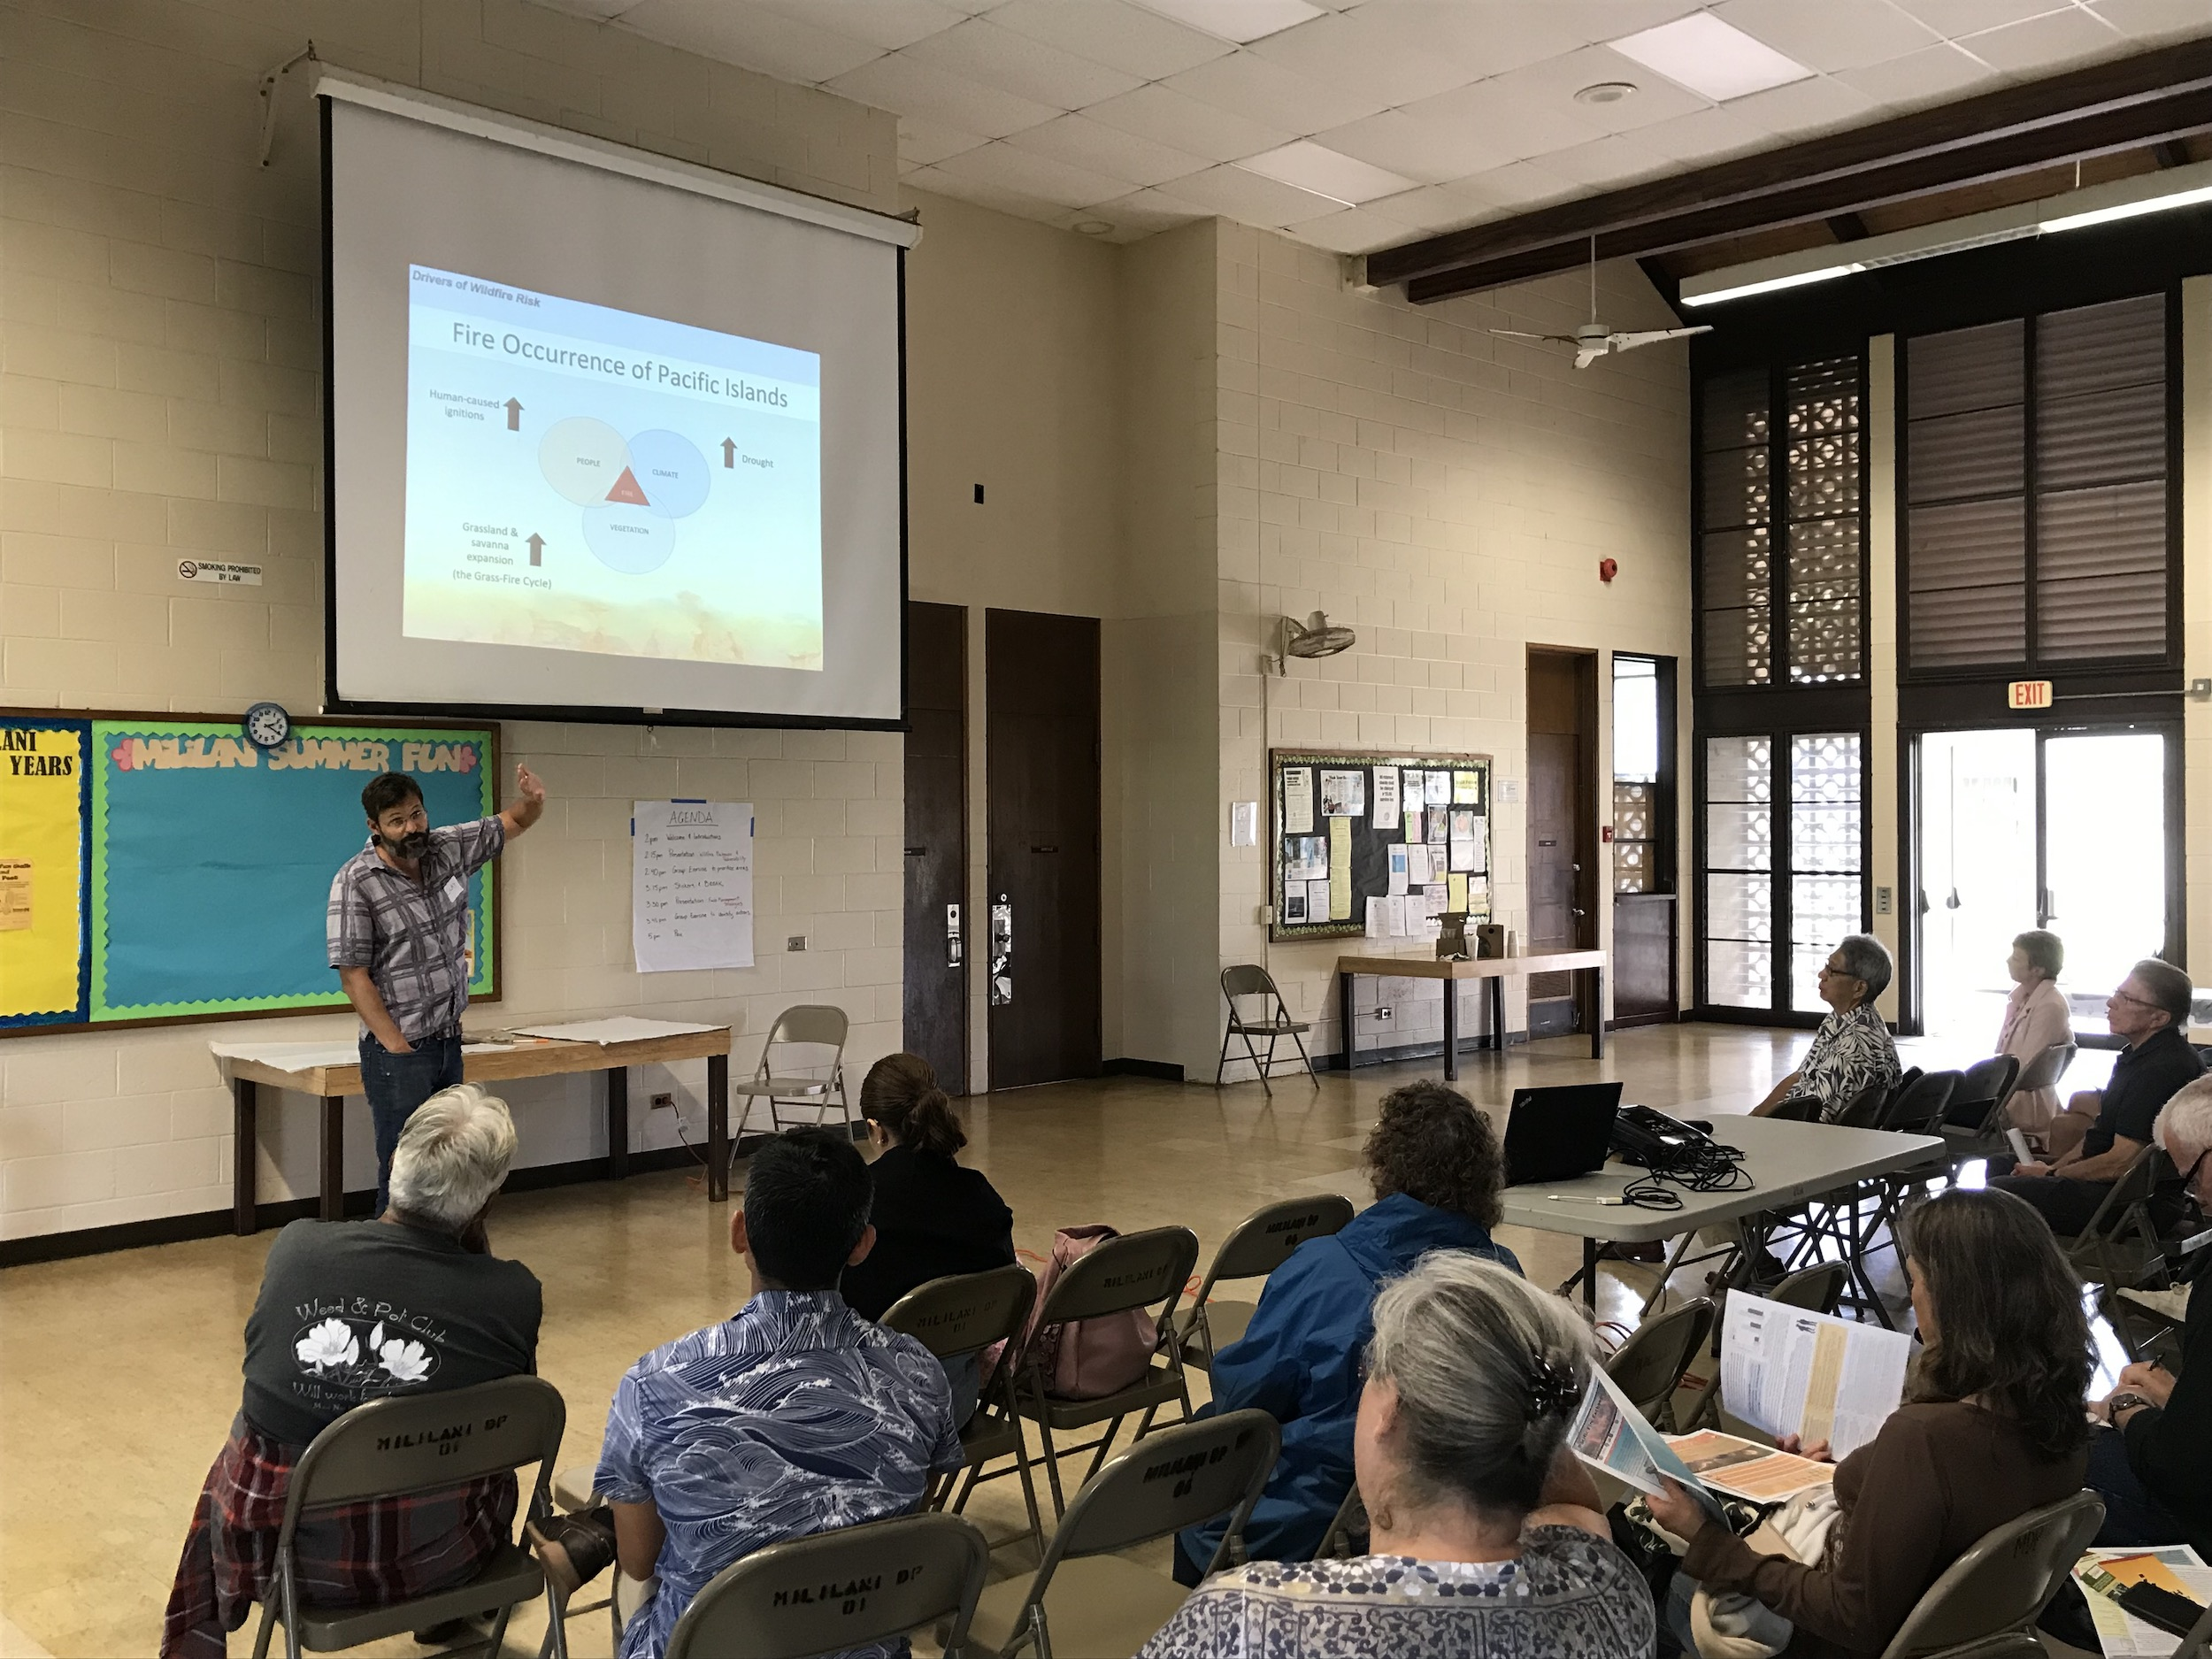 Oahu Vegetative Fuels Management Collaborative Action Planning Workshop_2_19_2019_4.jpg